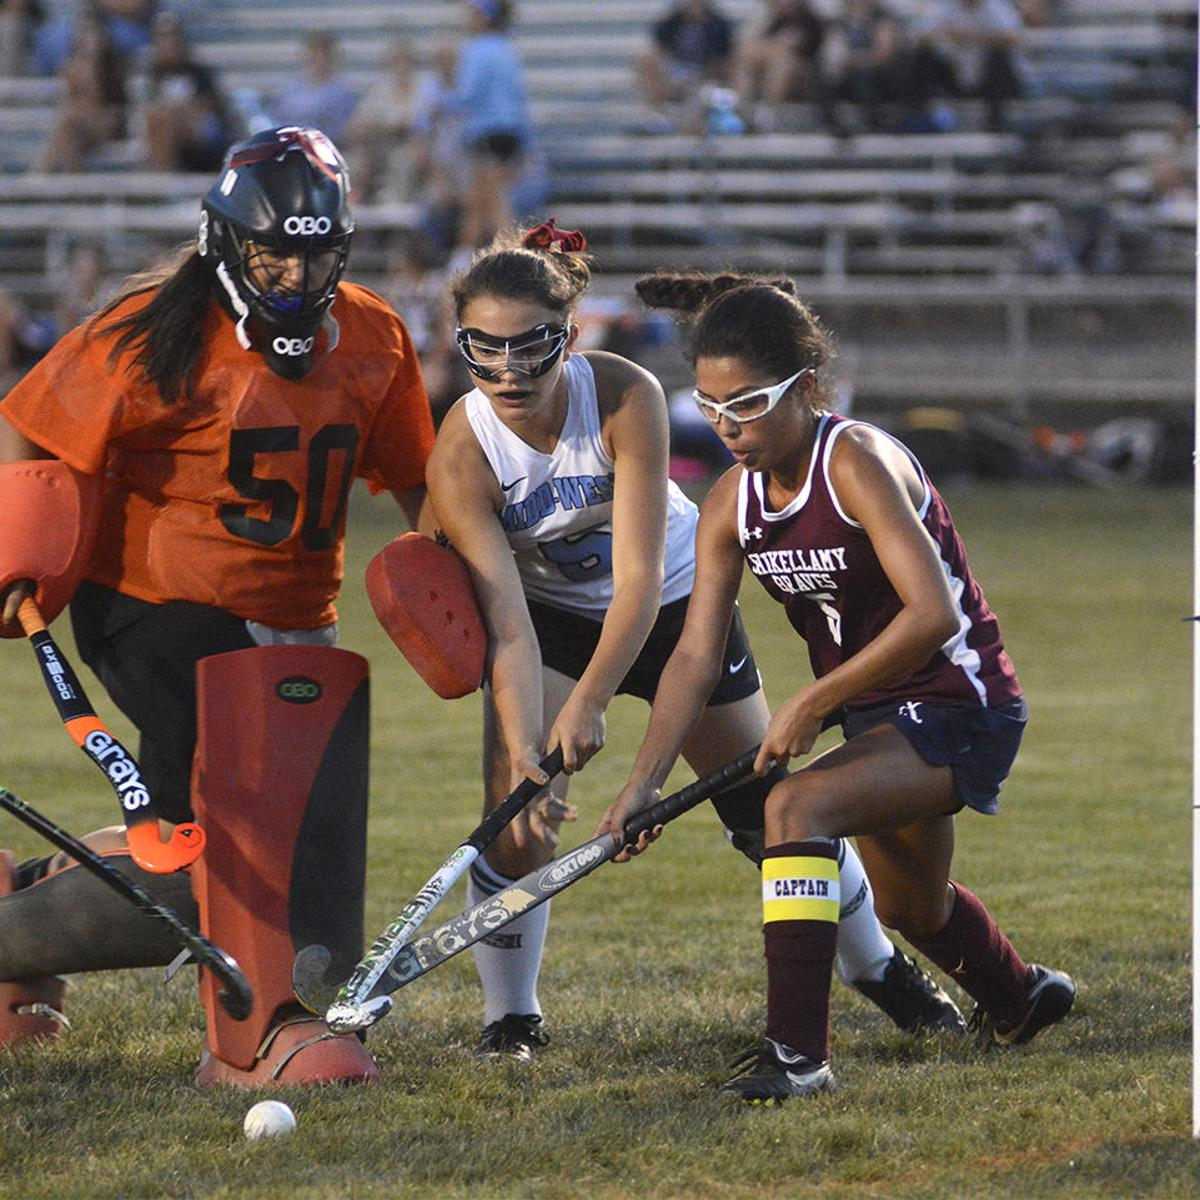 Osgood's two goals lift Midd-West over Shikellamy in field